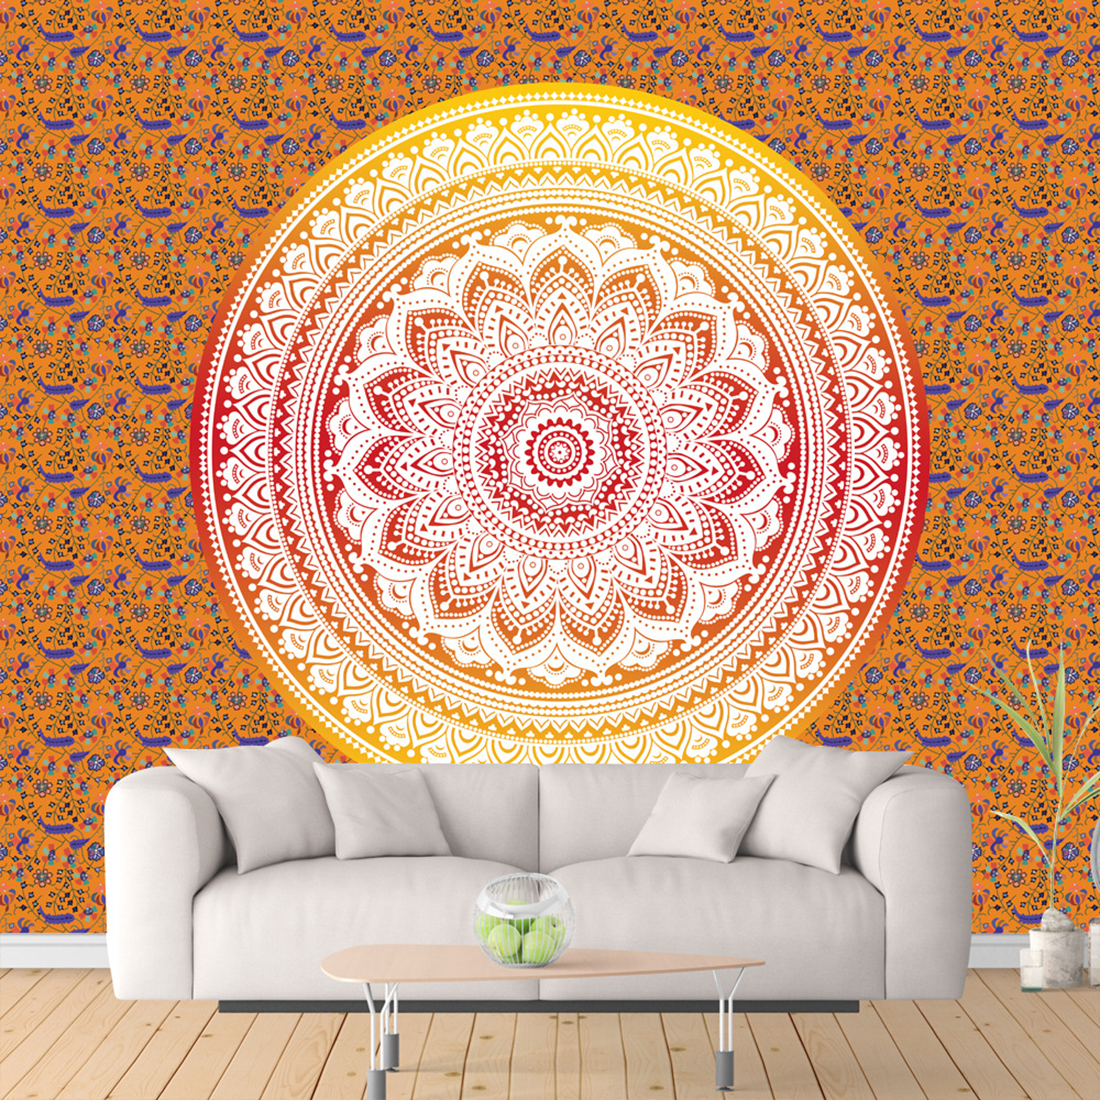 India Mandala Tapestry Home Decorated Tapestry Beach Towel Wall